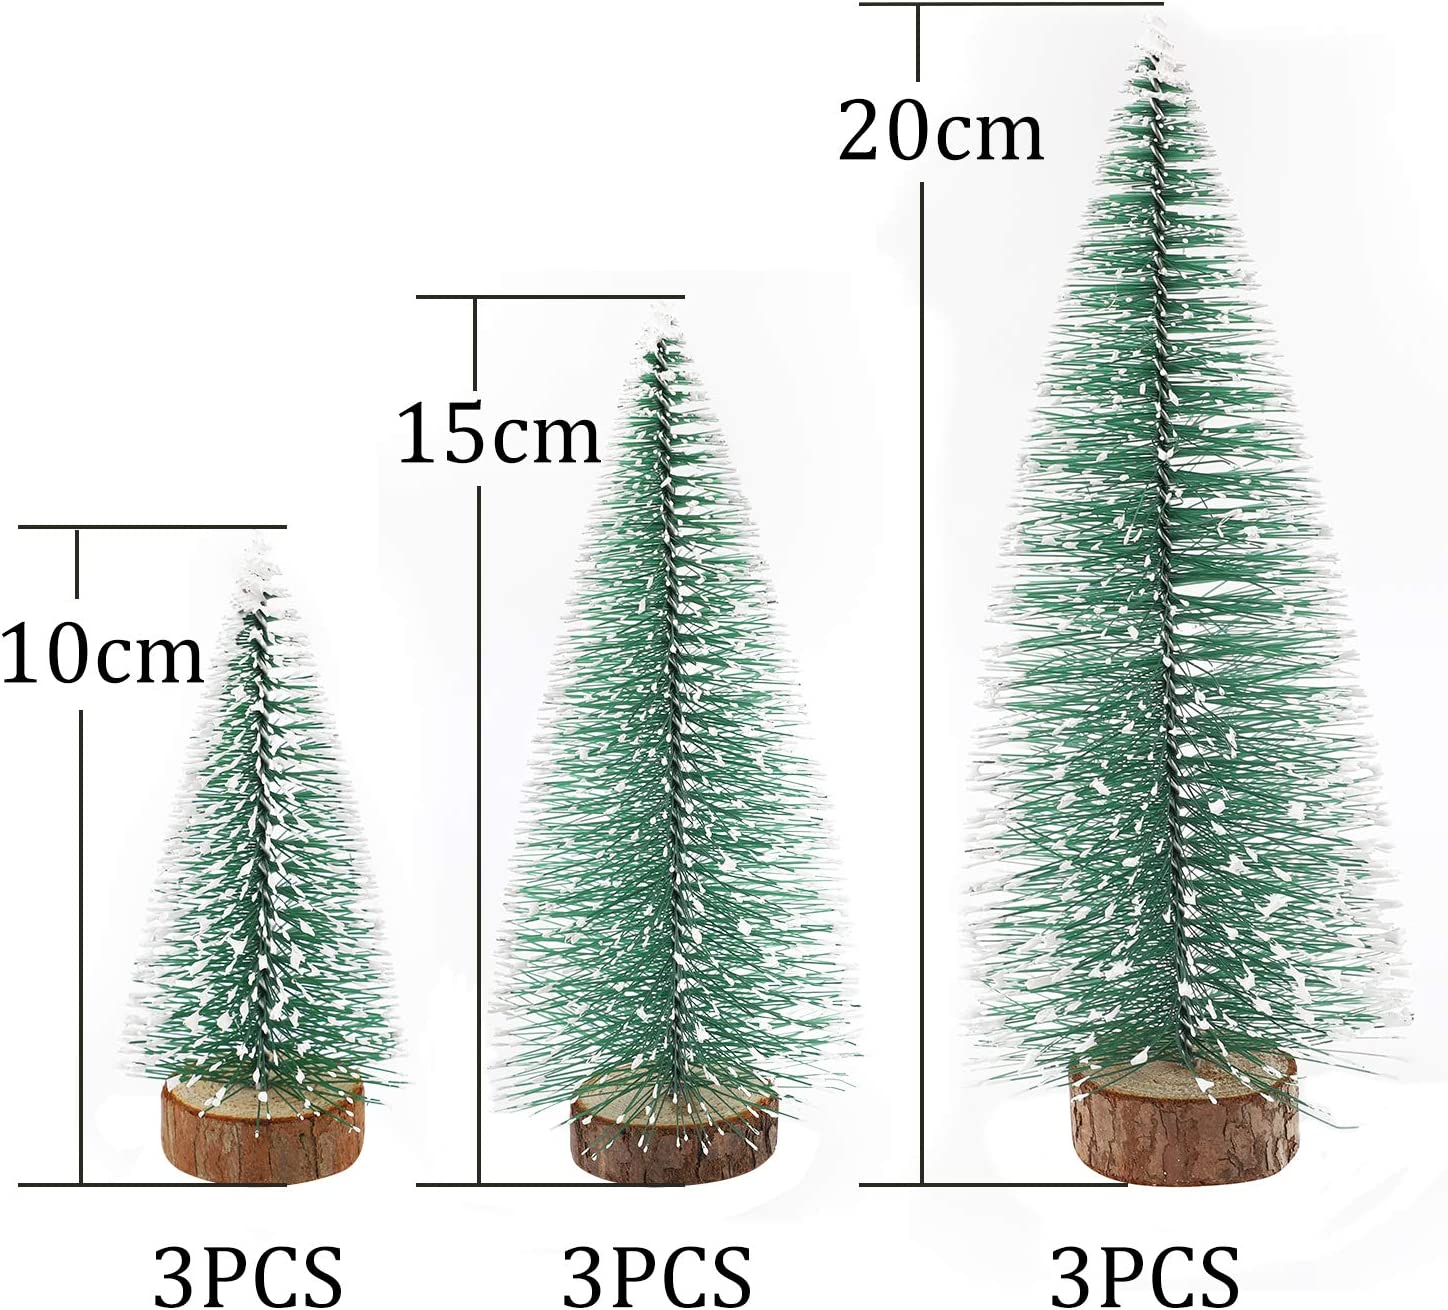 Artificial Sisal Snow Frost Trees 9Pcs Miniature Christmas Trees 3 Different Size Green Sisal Trees for Christmas Crafts Tabletop Party Home Decoration Herefun Mini Christmas Trees